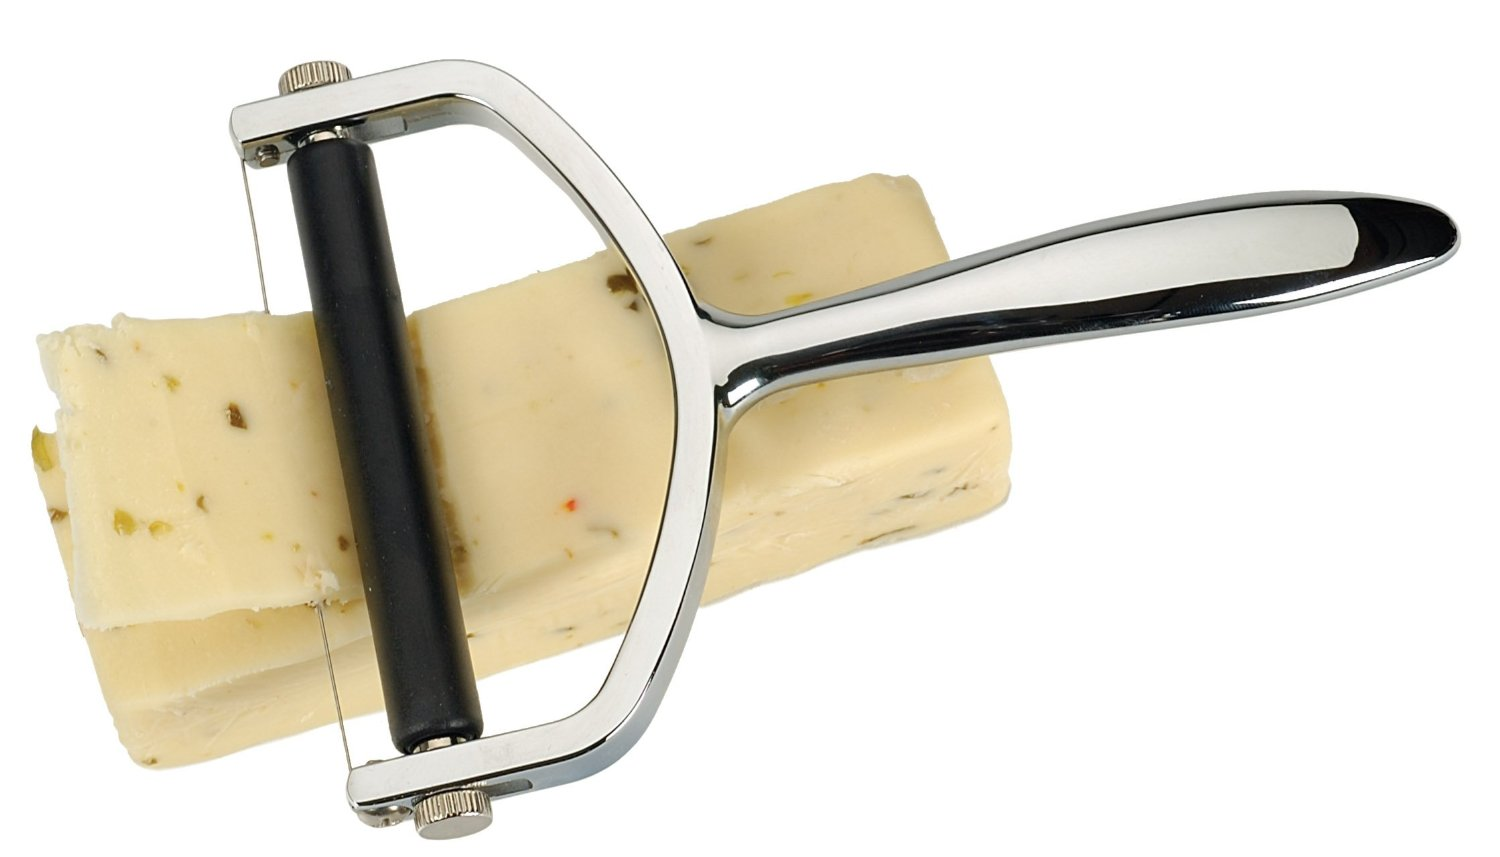 Cheese Slicer